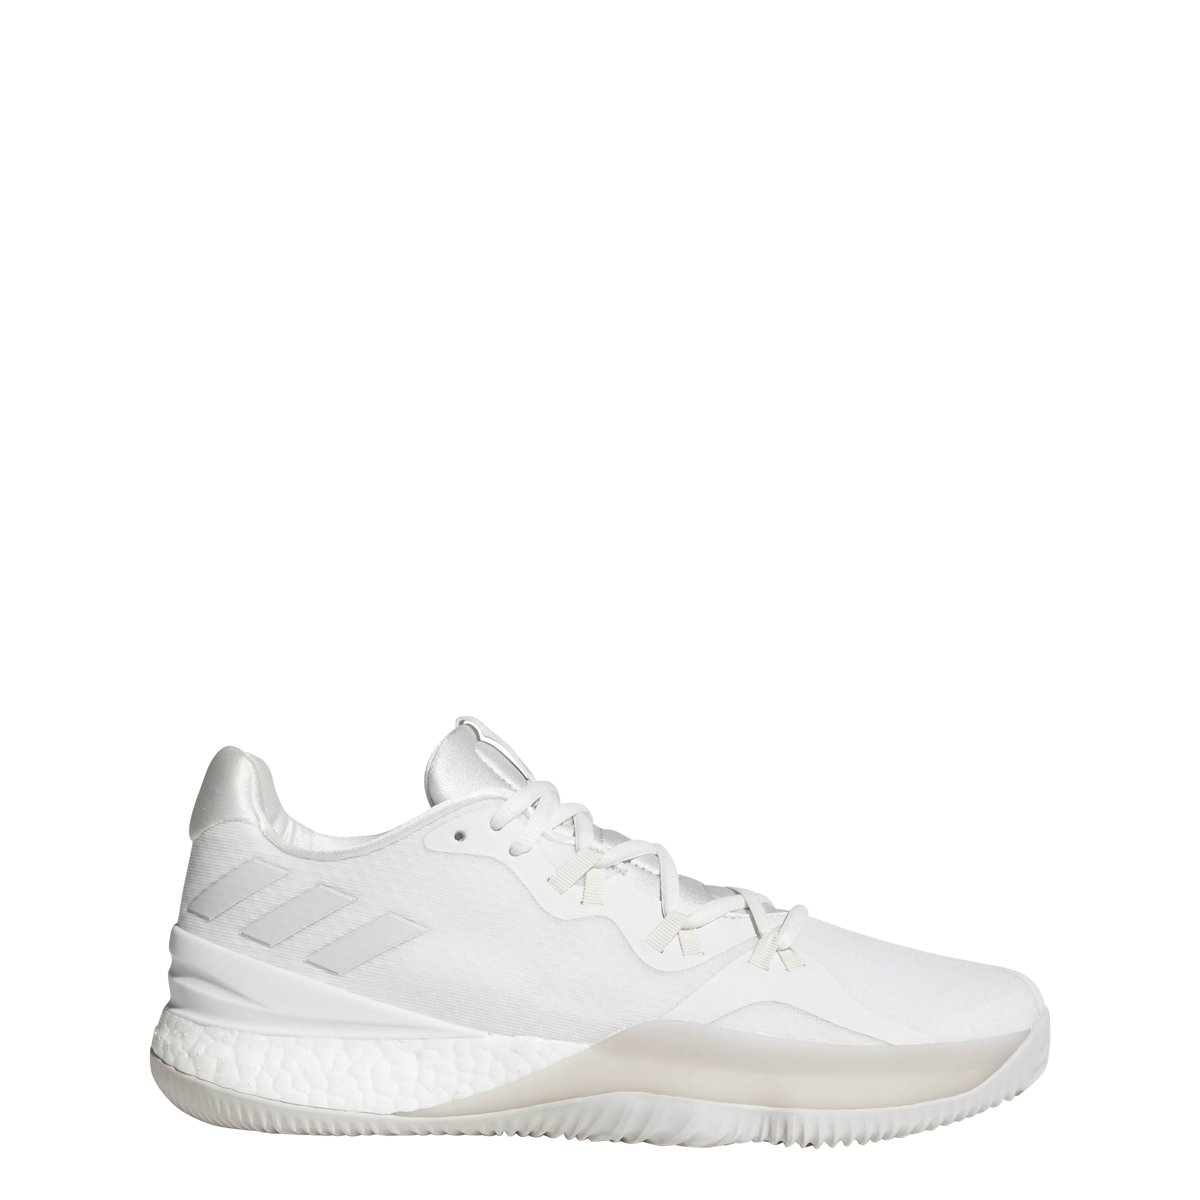 adidas Crazy Light Boost 2018 Shoe Men's Basketball B07BHMP8HB 8.5 D(M) US|Crystal White-chalk Pearl-white